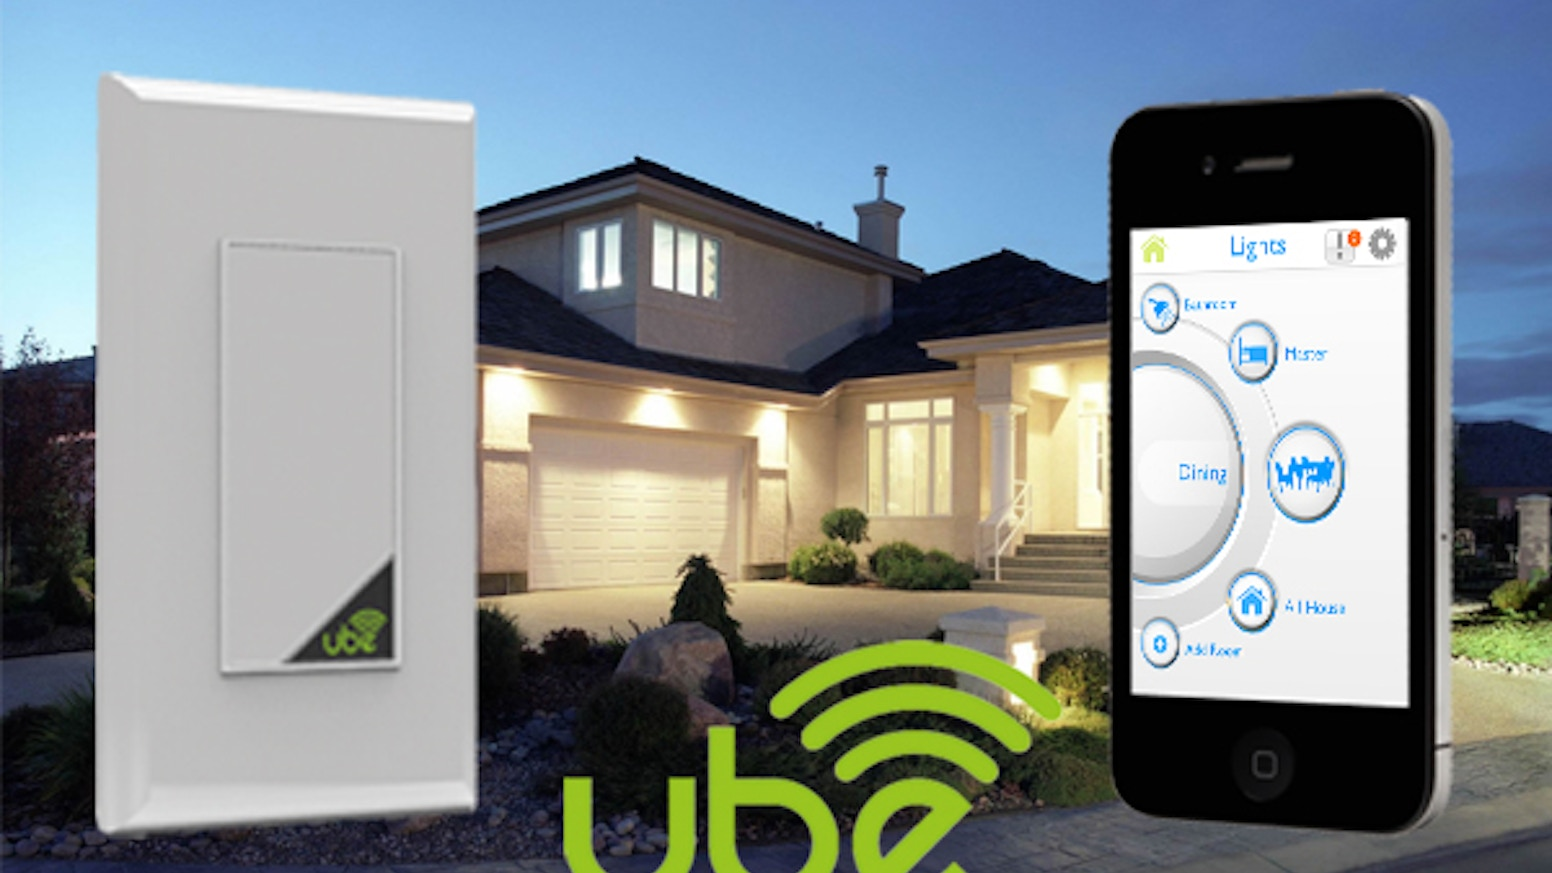 The most advanced home lighting control available - all on Wi-Fi